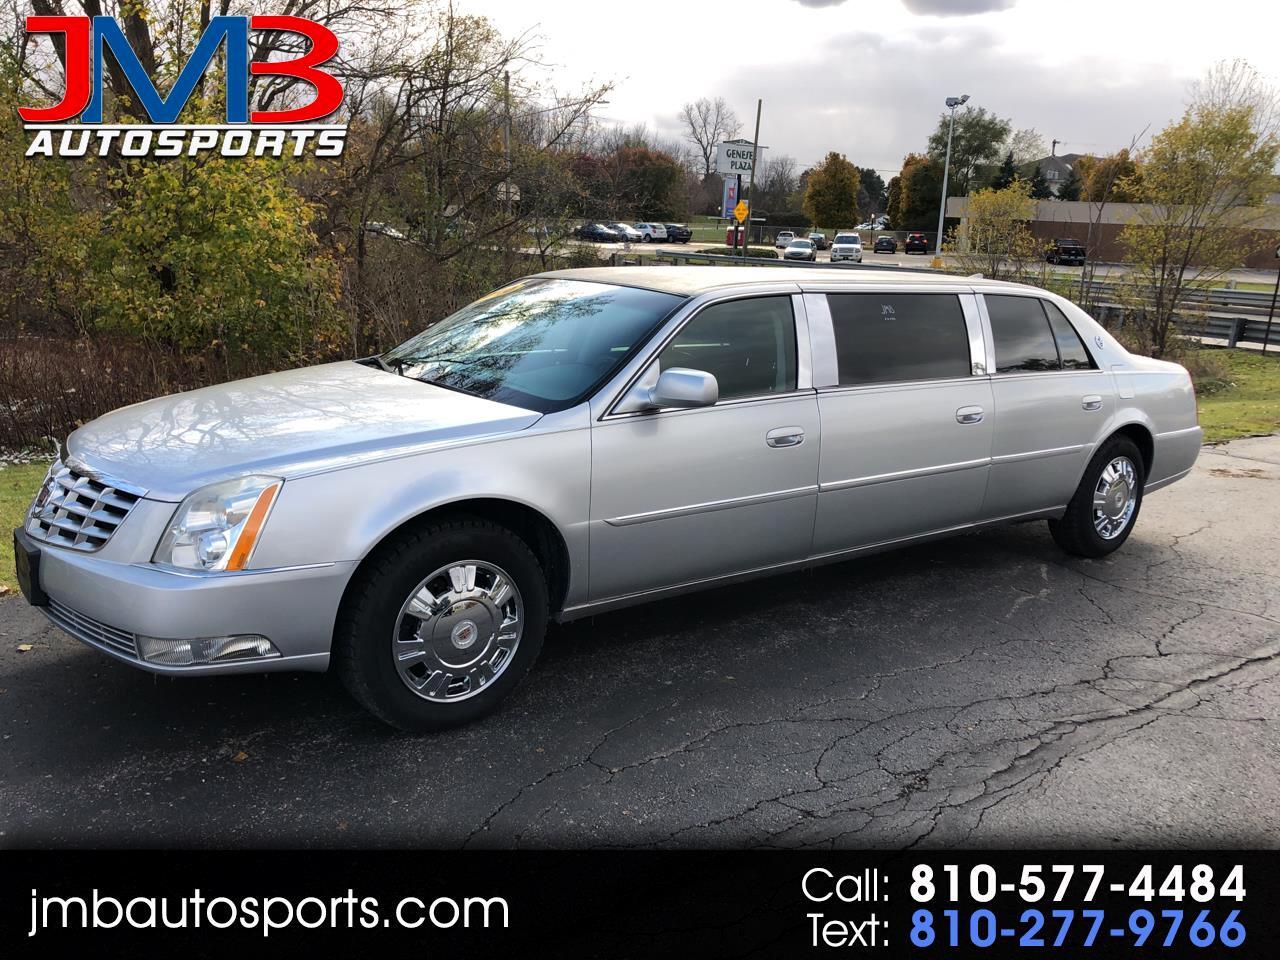 2010 Cadillac DTS Professional 4dr Sdn Limousine